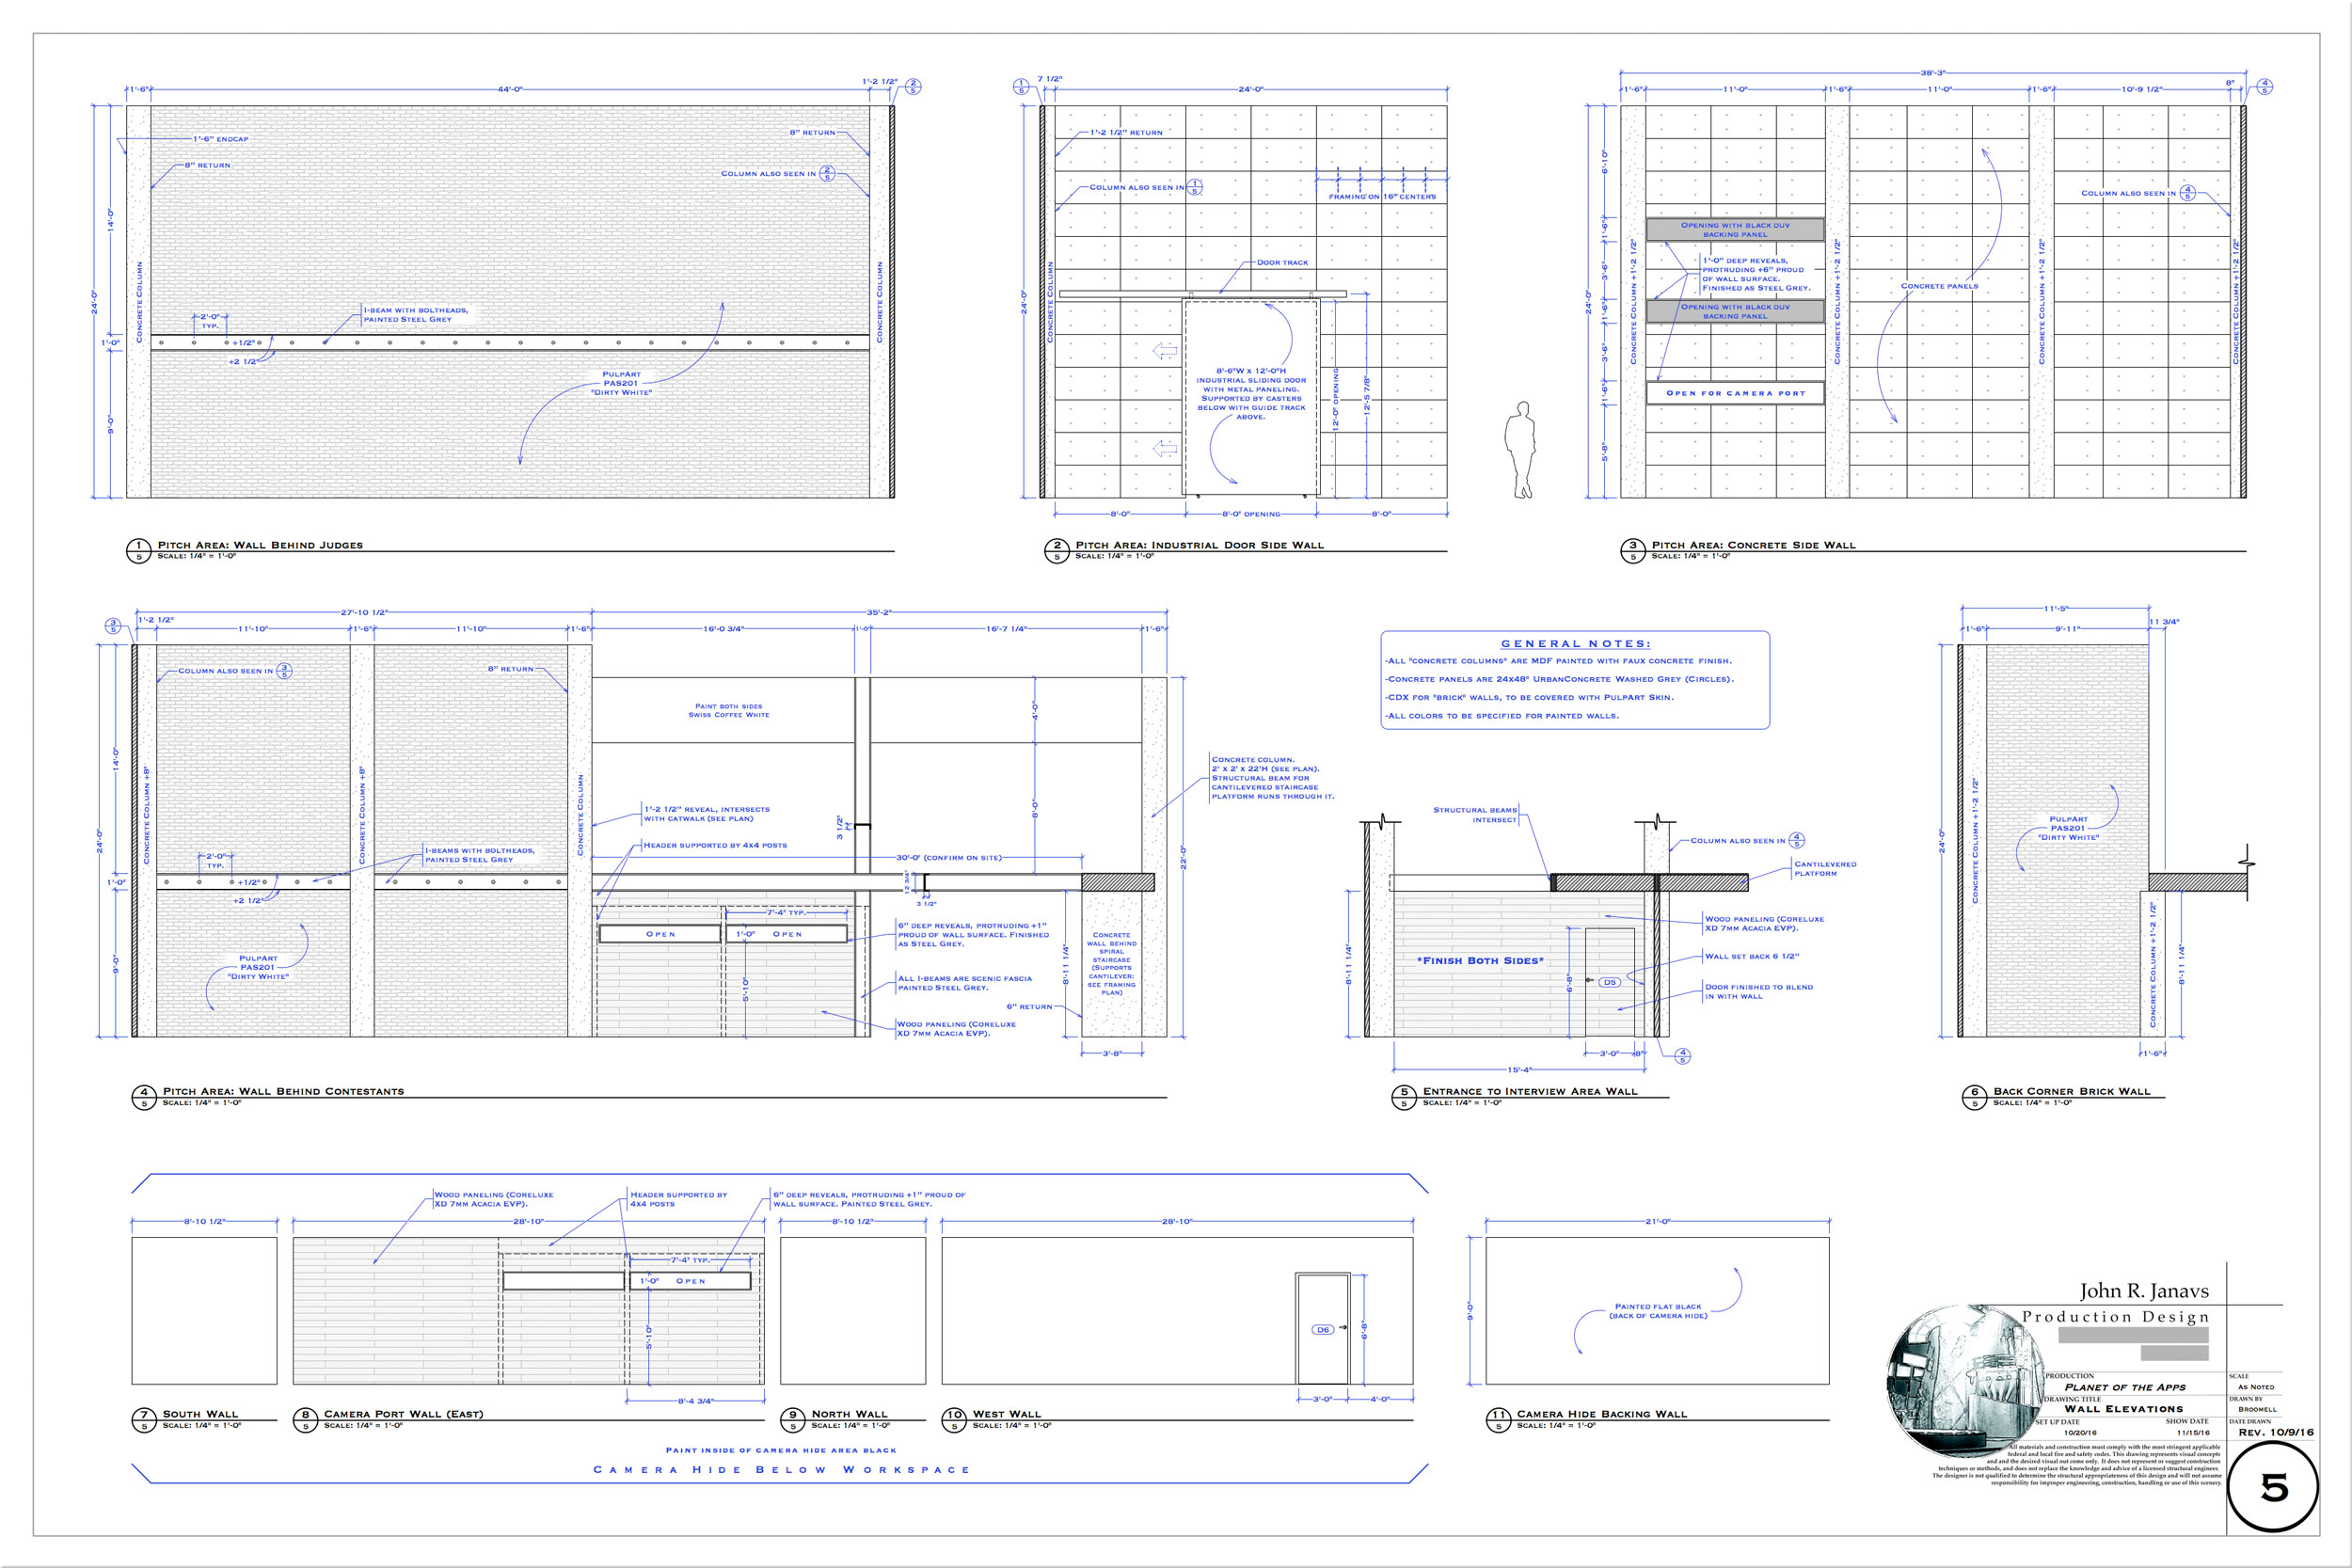 andy-broomell-set-design-drafting-pota1.jpg